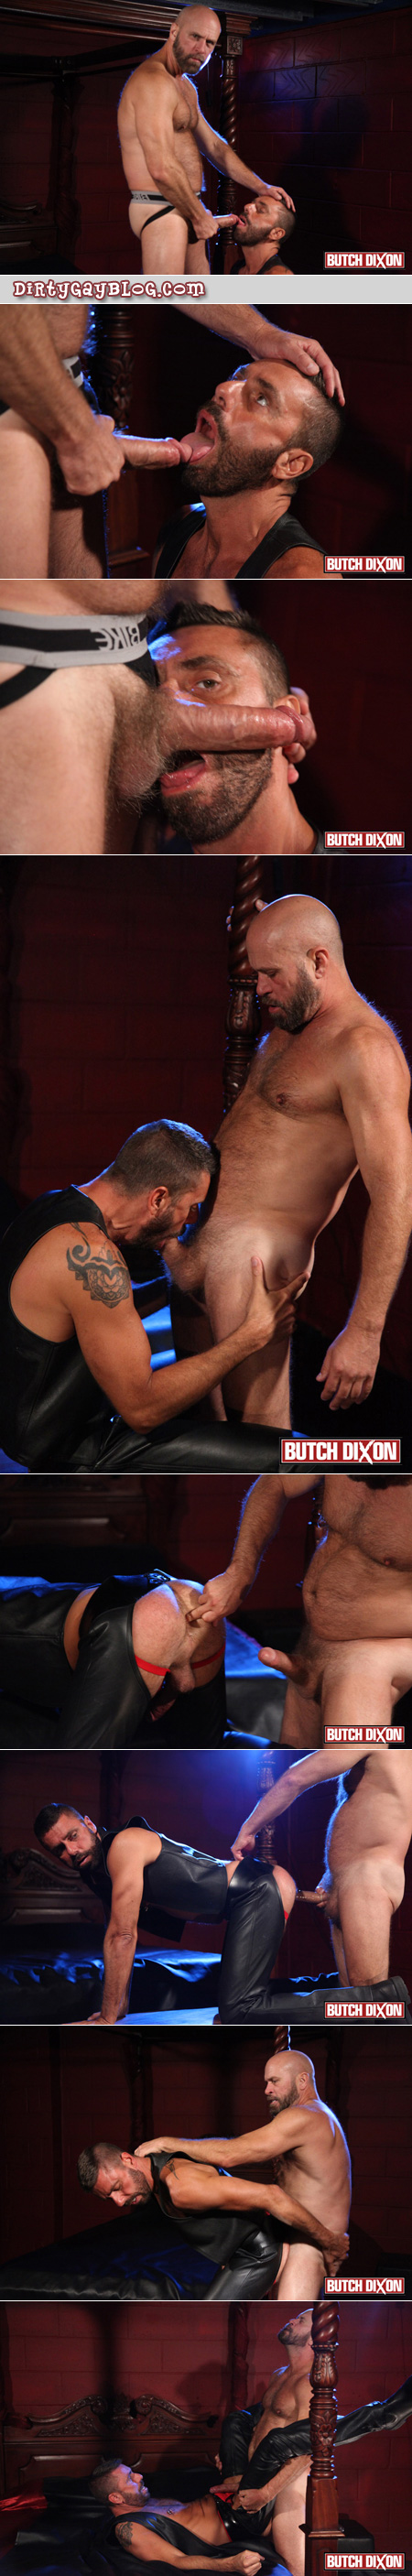 Butch, older leather men having rough gay sex in jockstraps and boots.